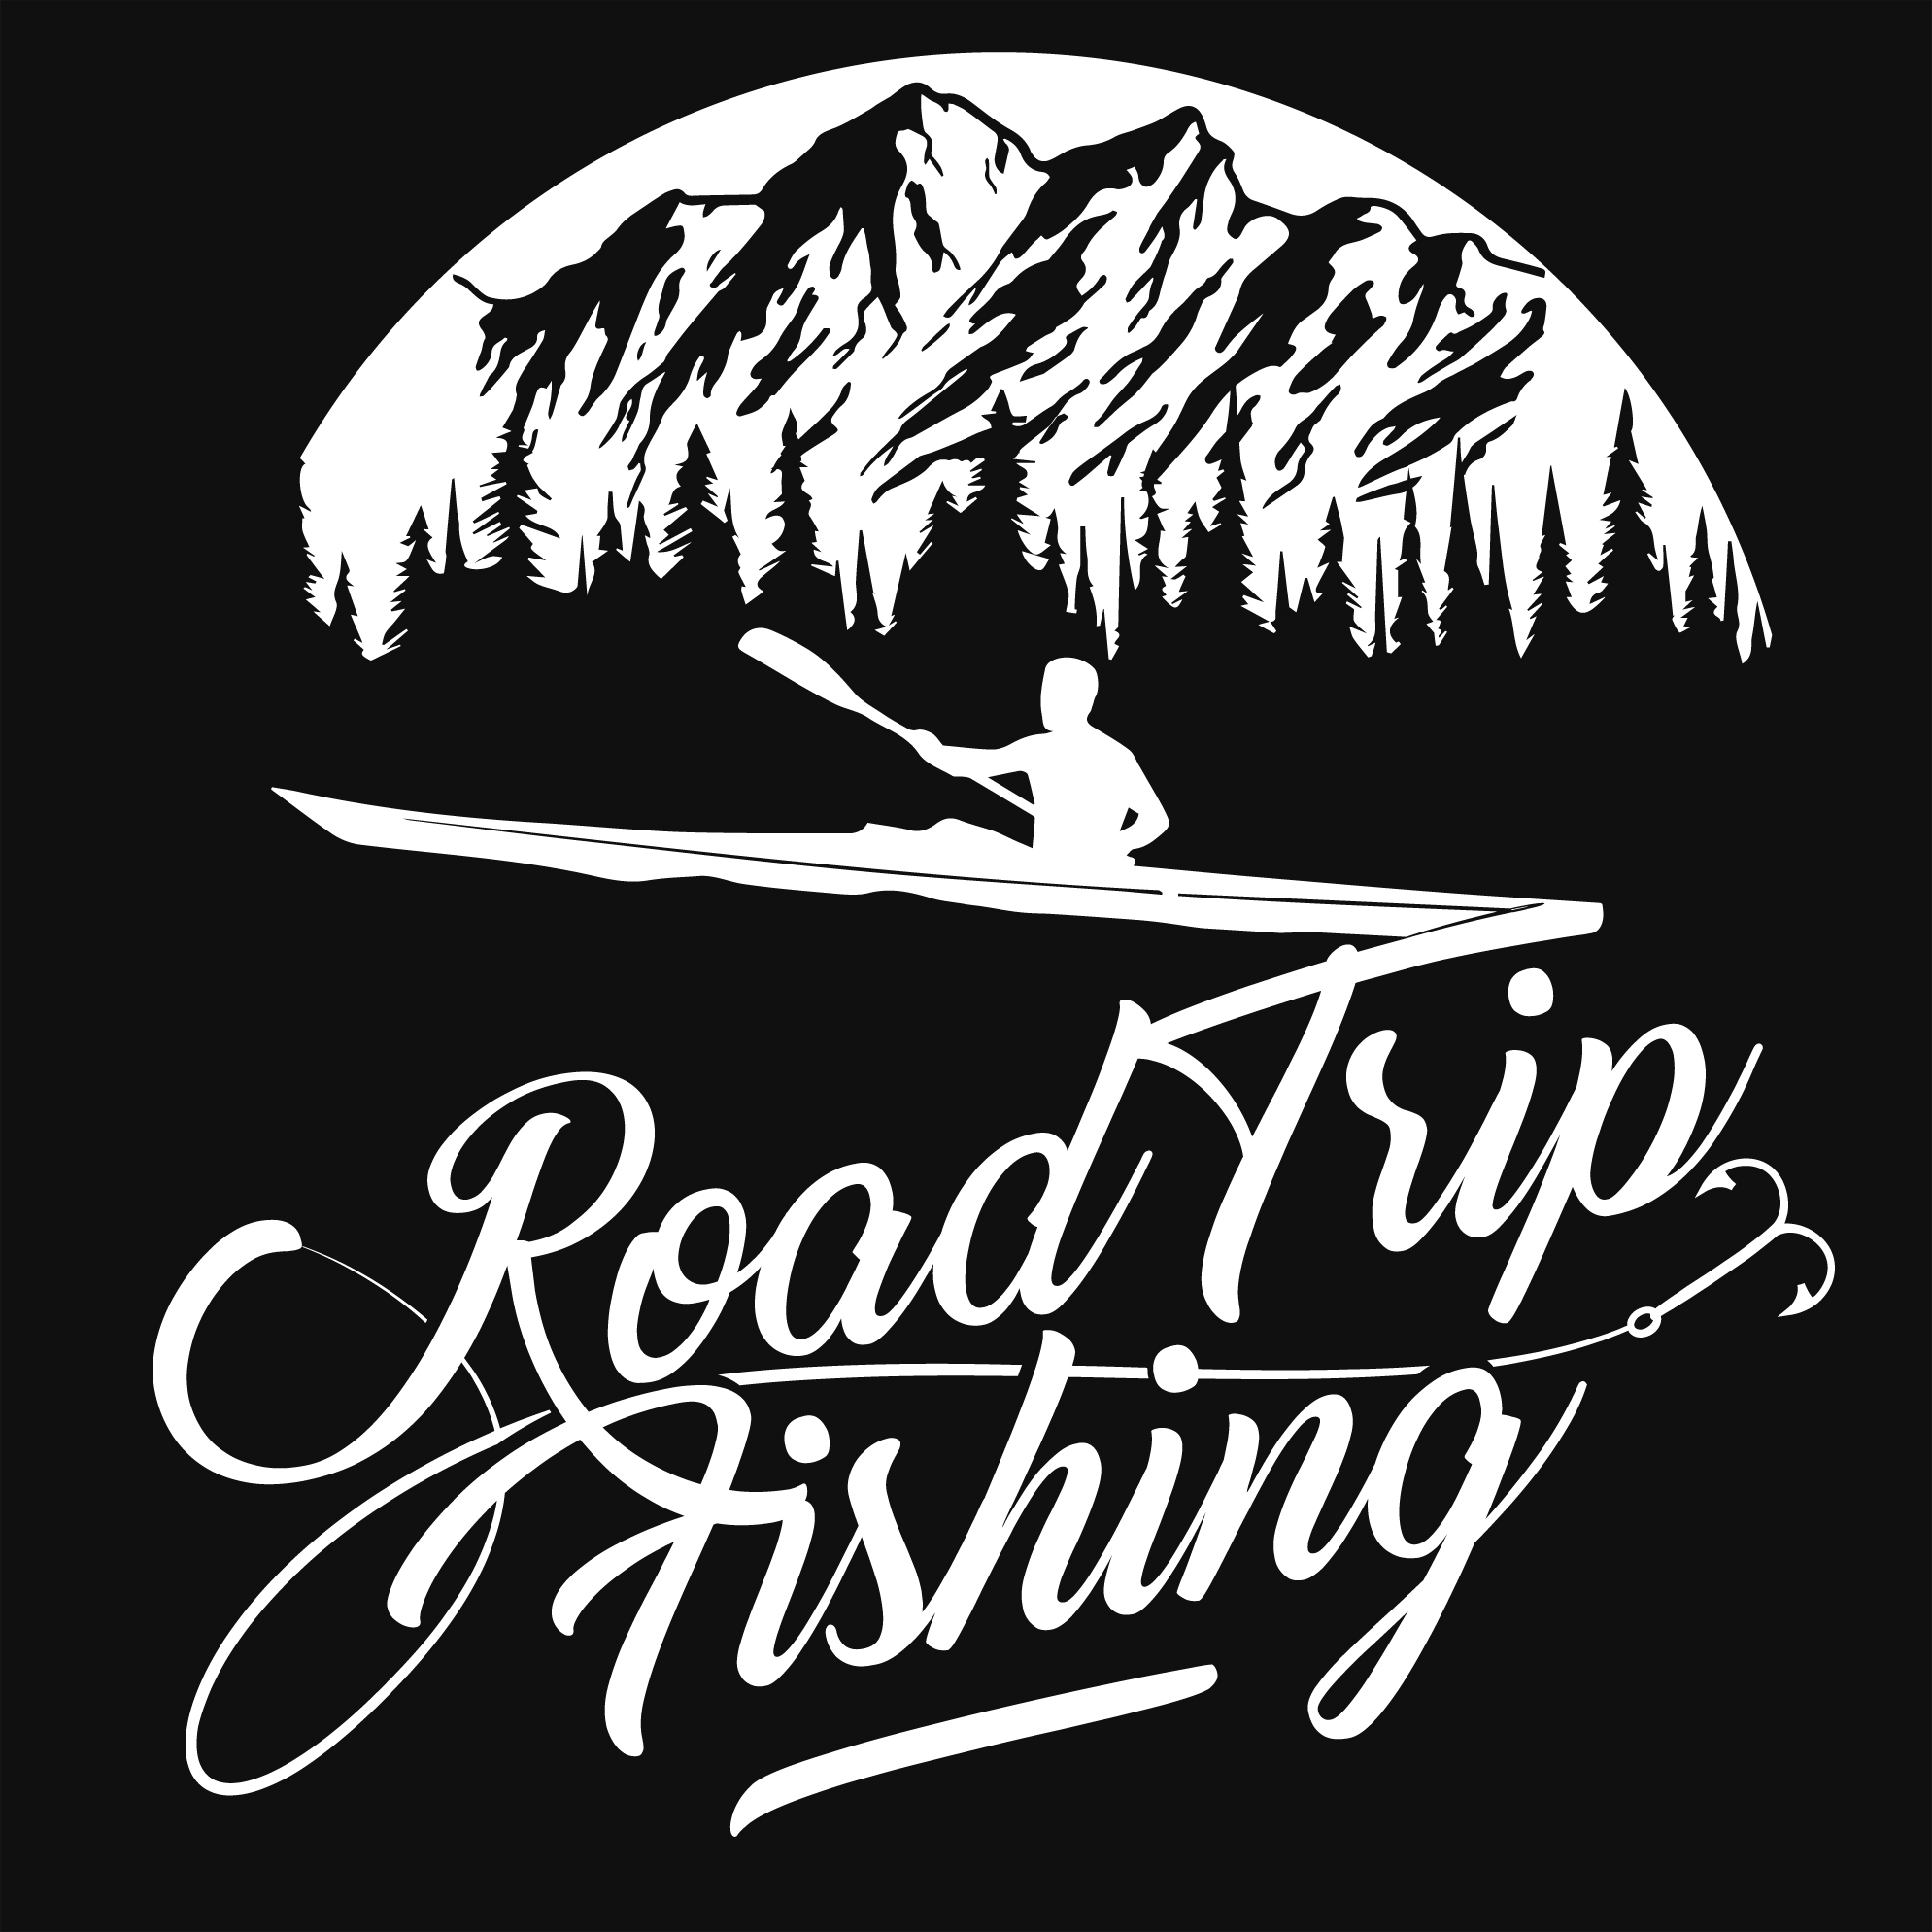 Guides | Road Trip Fishing